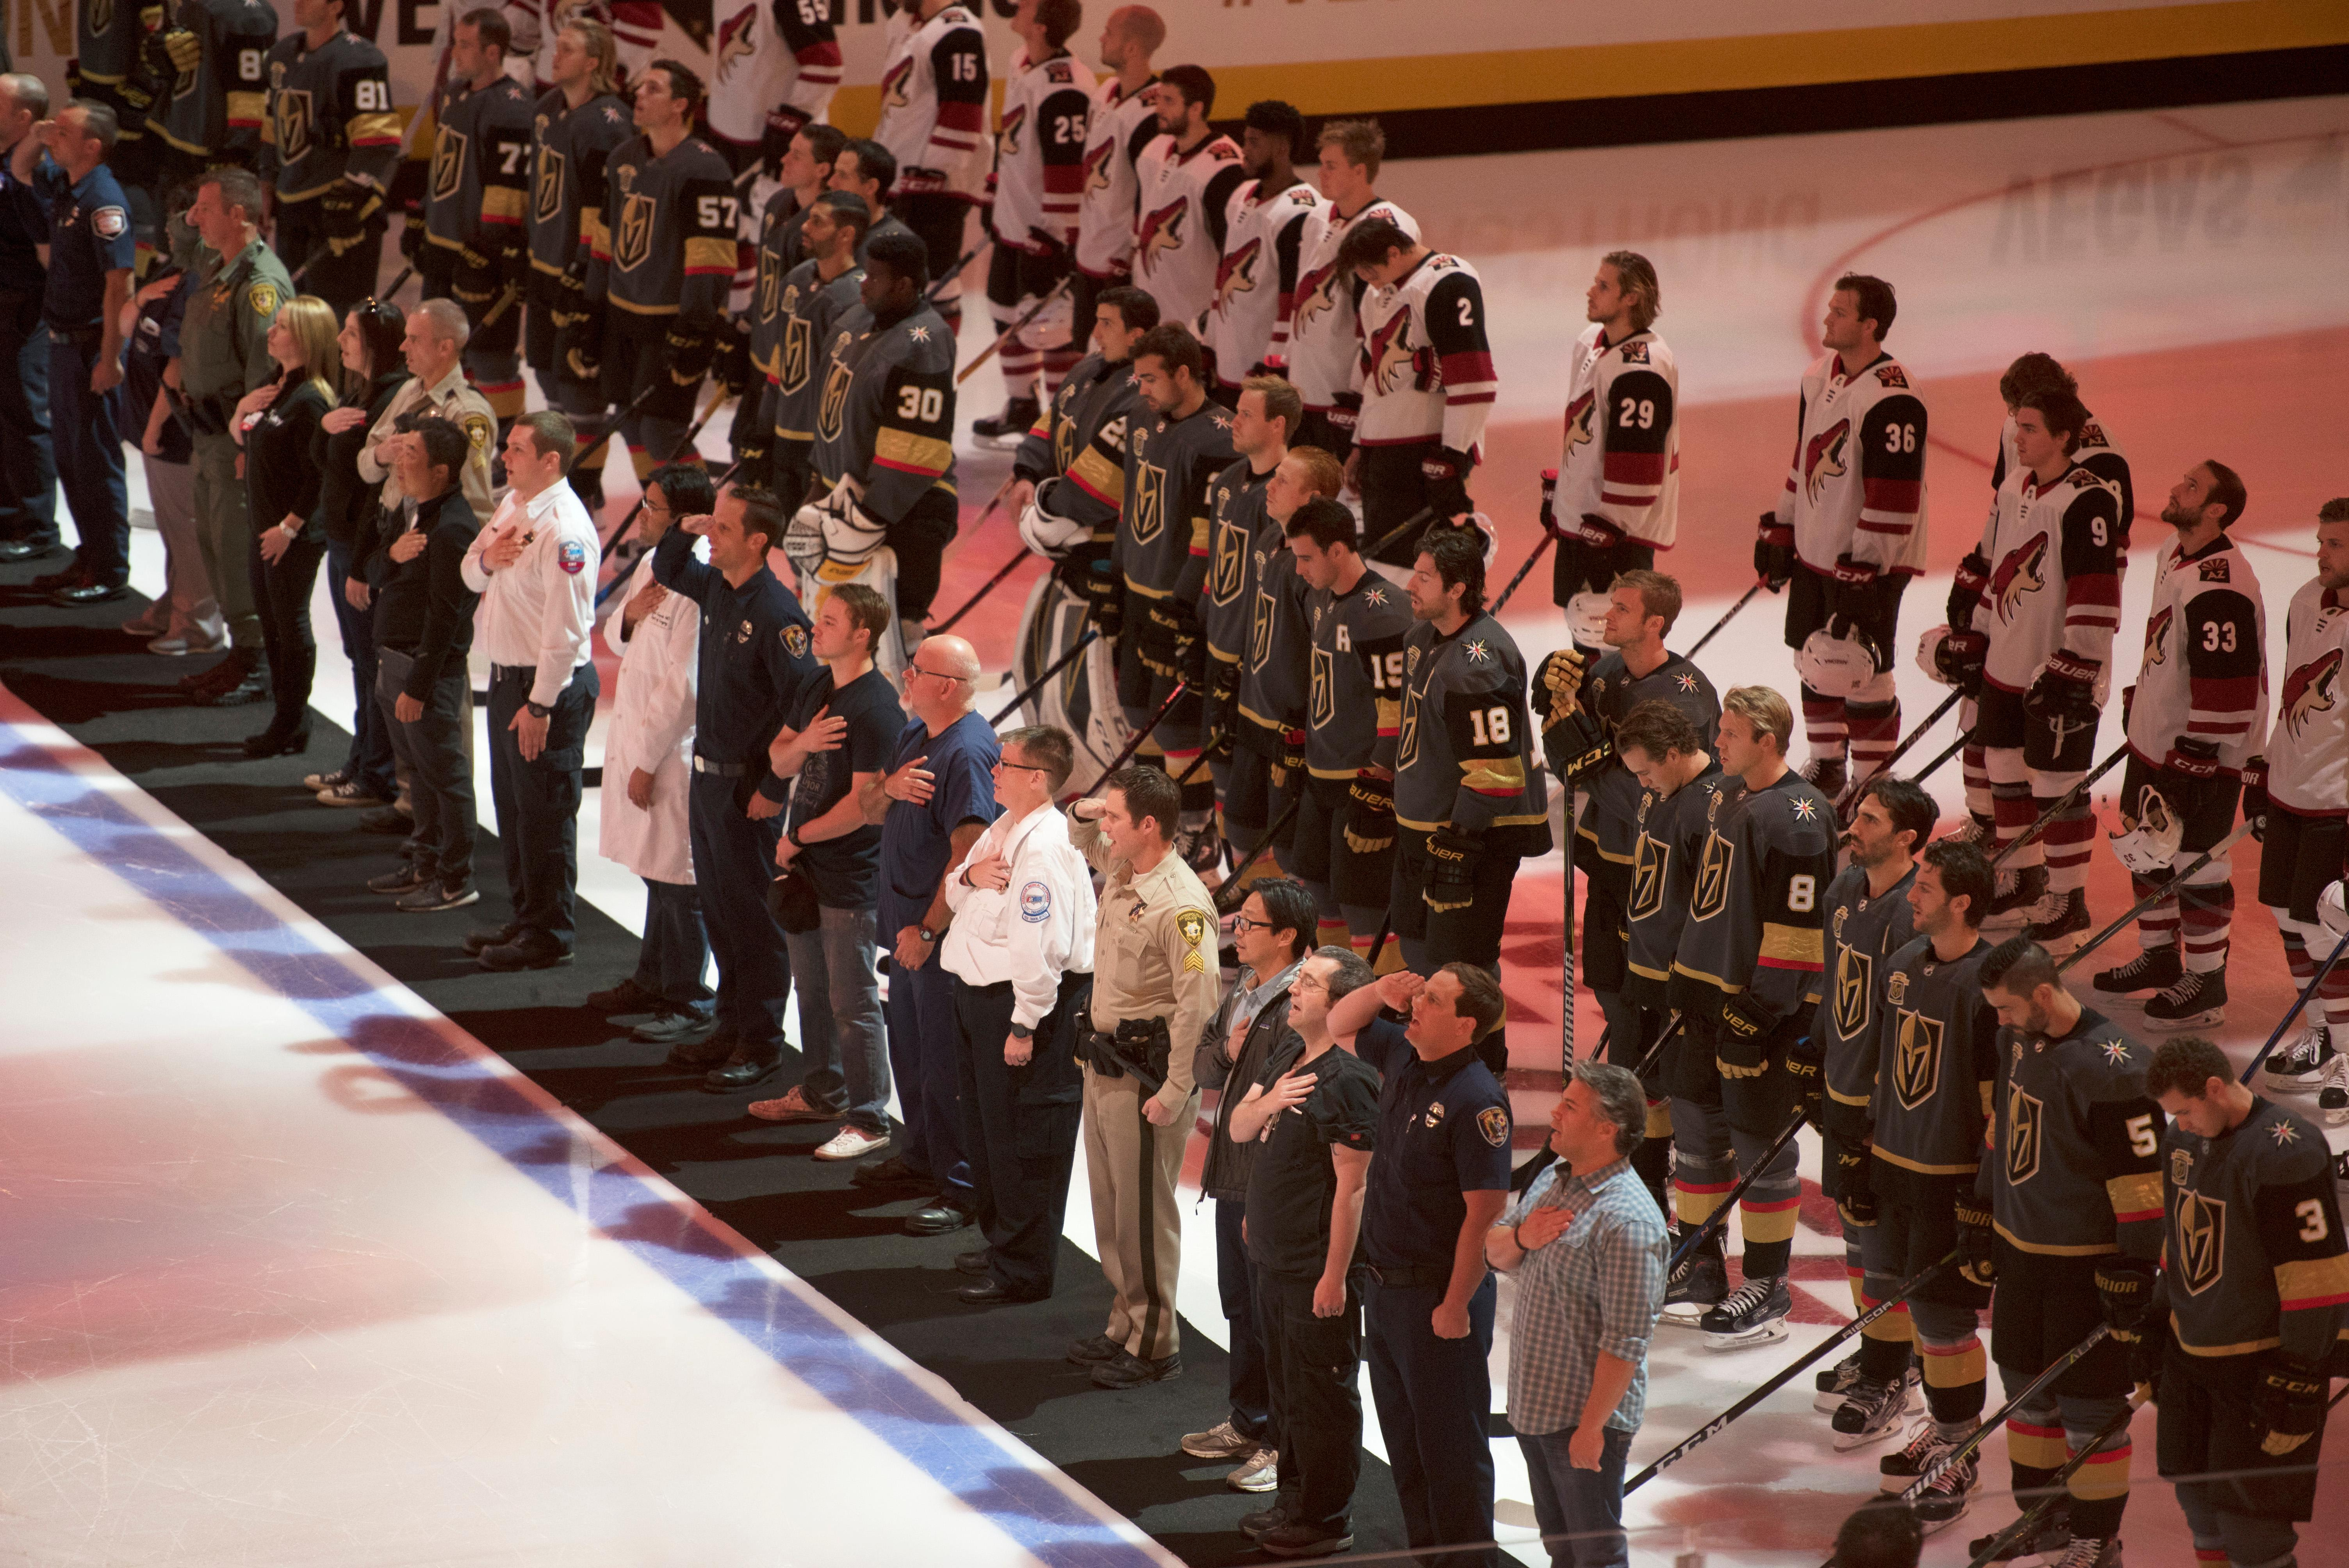 First responders and medical personnel involved in the October 1st tragedy are backed by the Vegas Golden Knights and Arizona Coyotes for the singing of the national anthem during the Knights home opener Tuesday, Oct. 10, 2017, at the T-Mobile Arena. The Knights won 5-2 to extend their winning streak to 3-0. CREDIT: Sam Morris/Las Vegas News Bureau